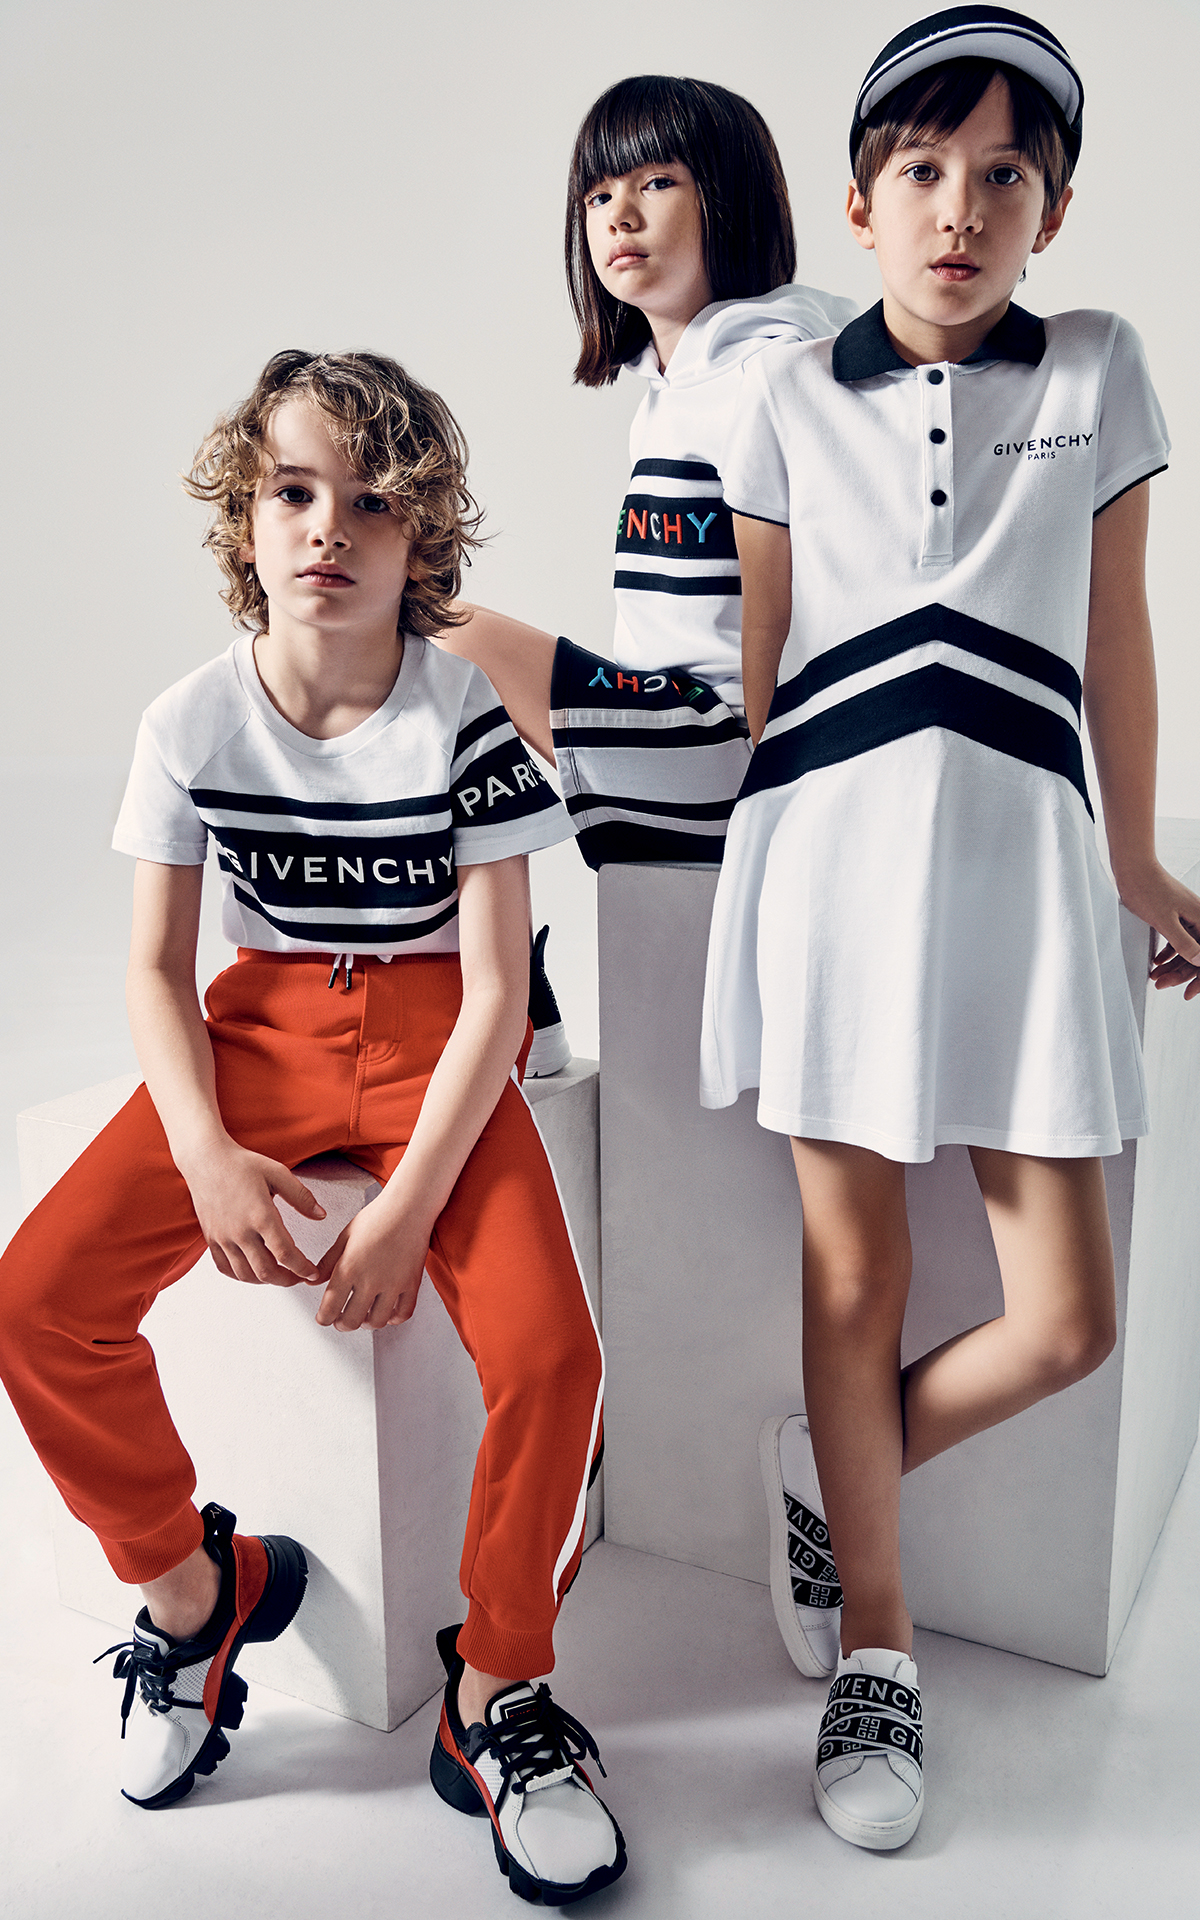 Givenchy Kids La Vallée Village Image